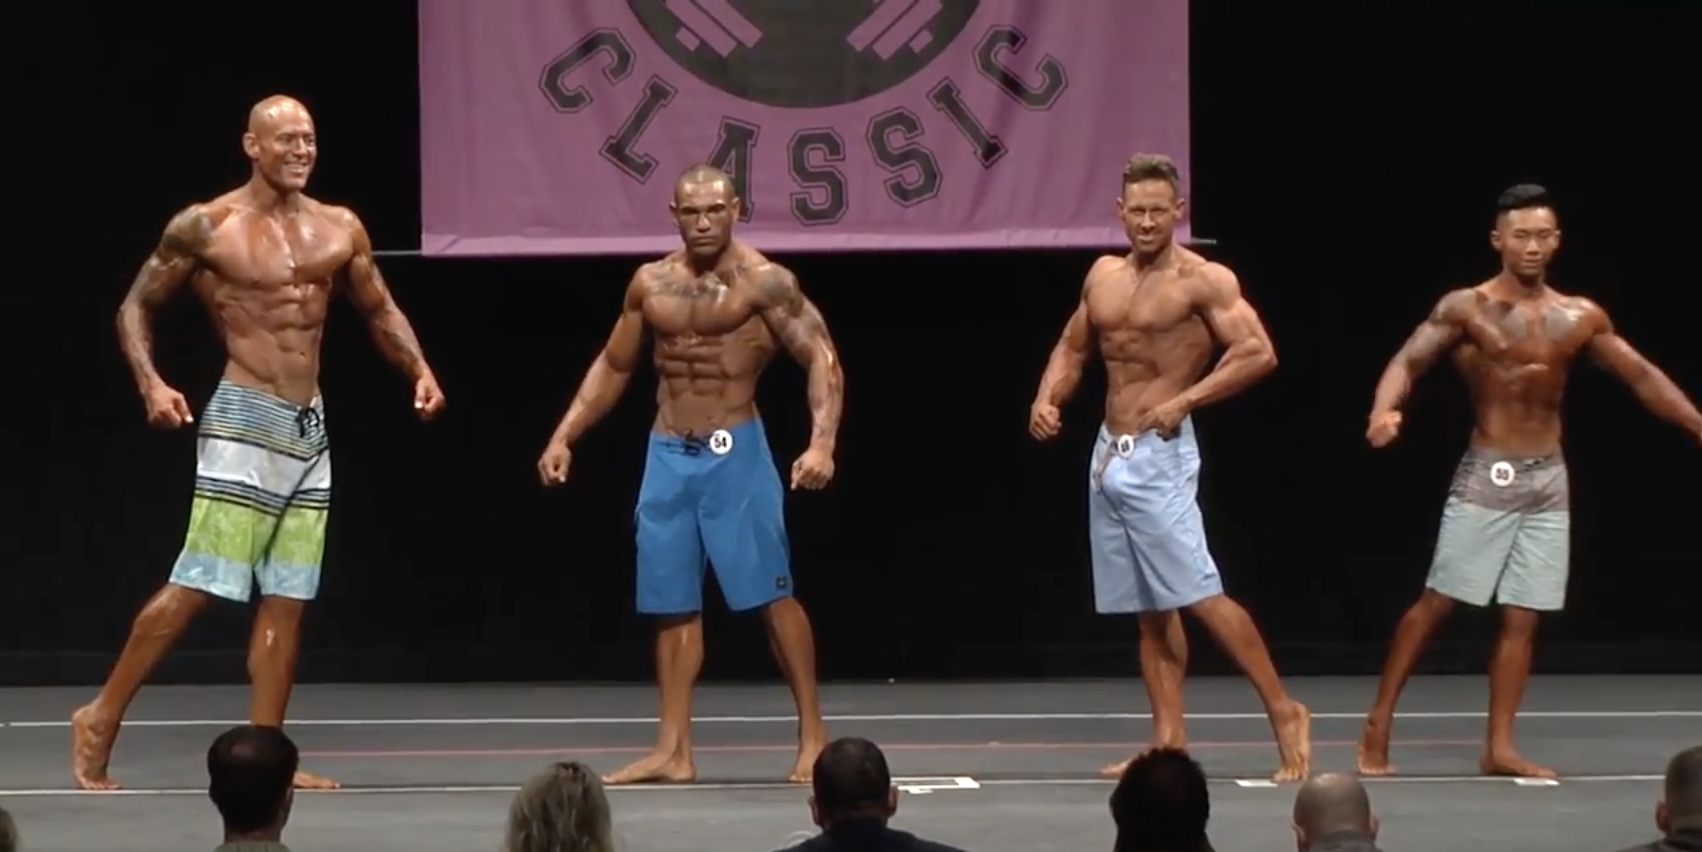 2017 NPC Northern Classic Men's Physique Overall Video